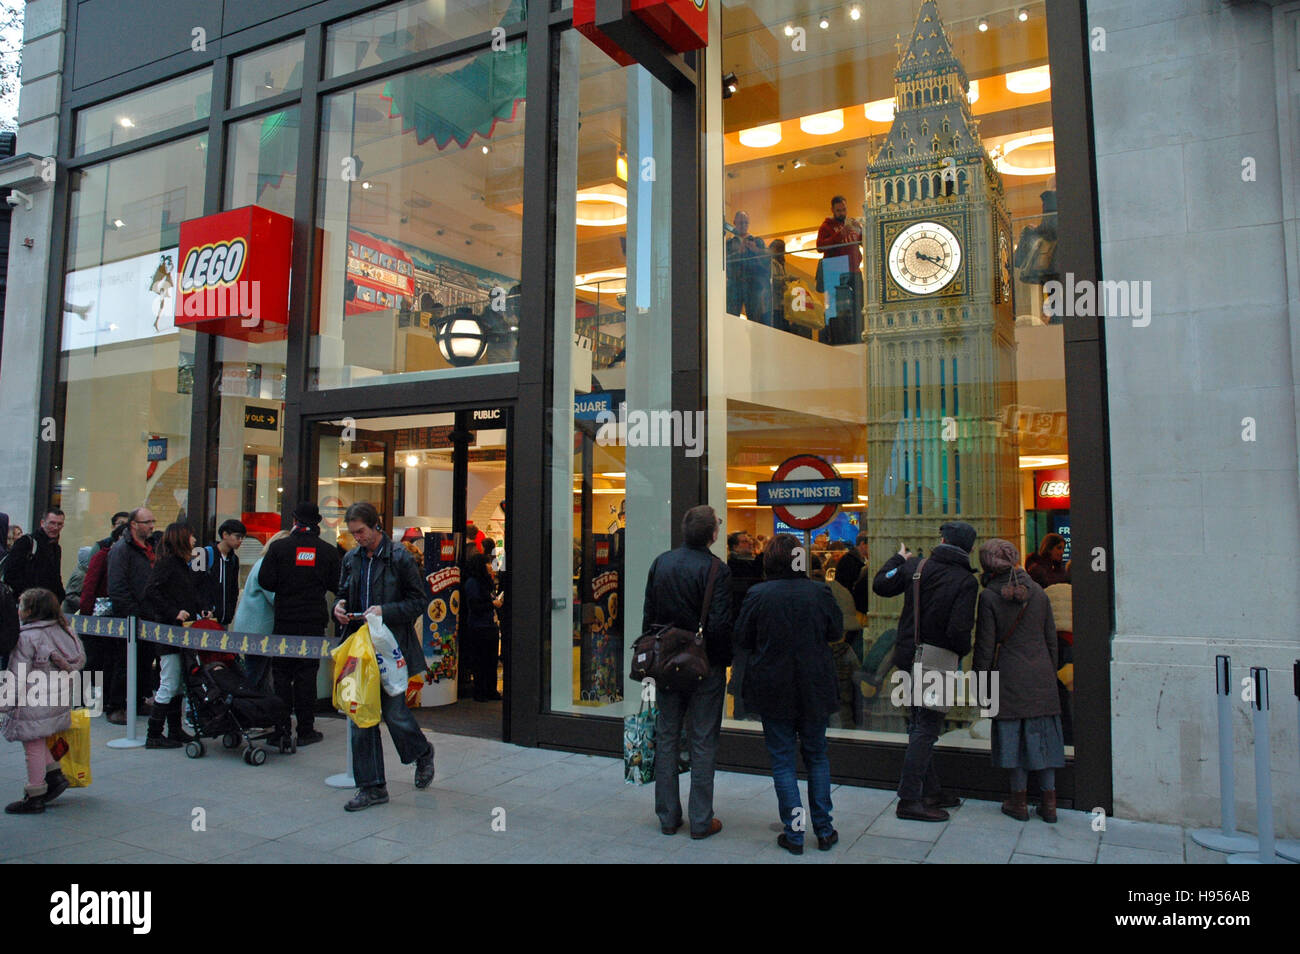 London uk 18th nov 2016 new lego store in leicester square one stock pho - Boutique lego londres ...